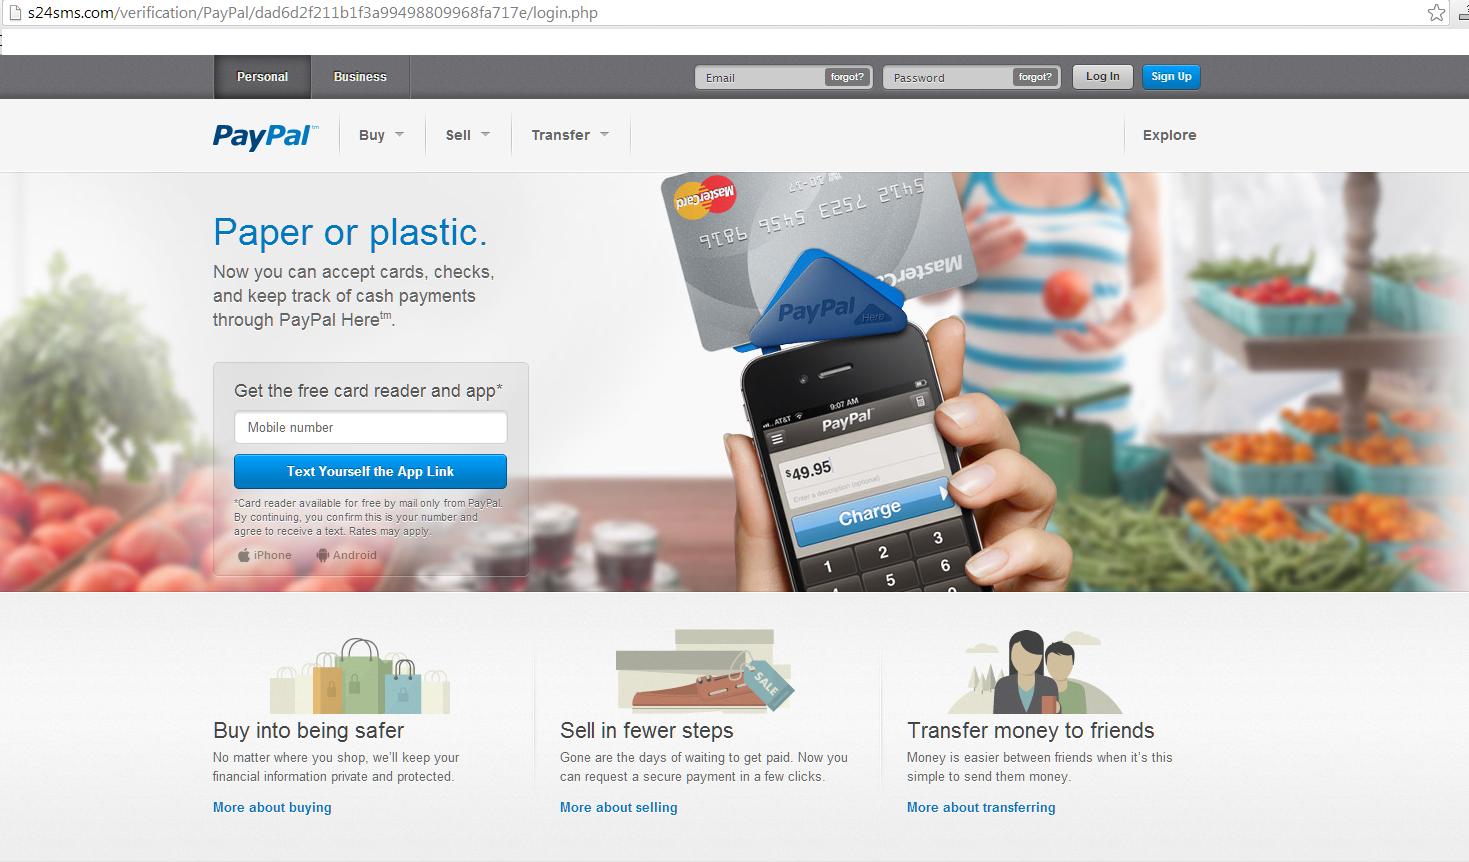 The page that looks like Paypal, but is s25sms.com